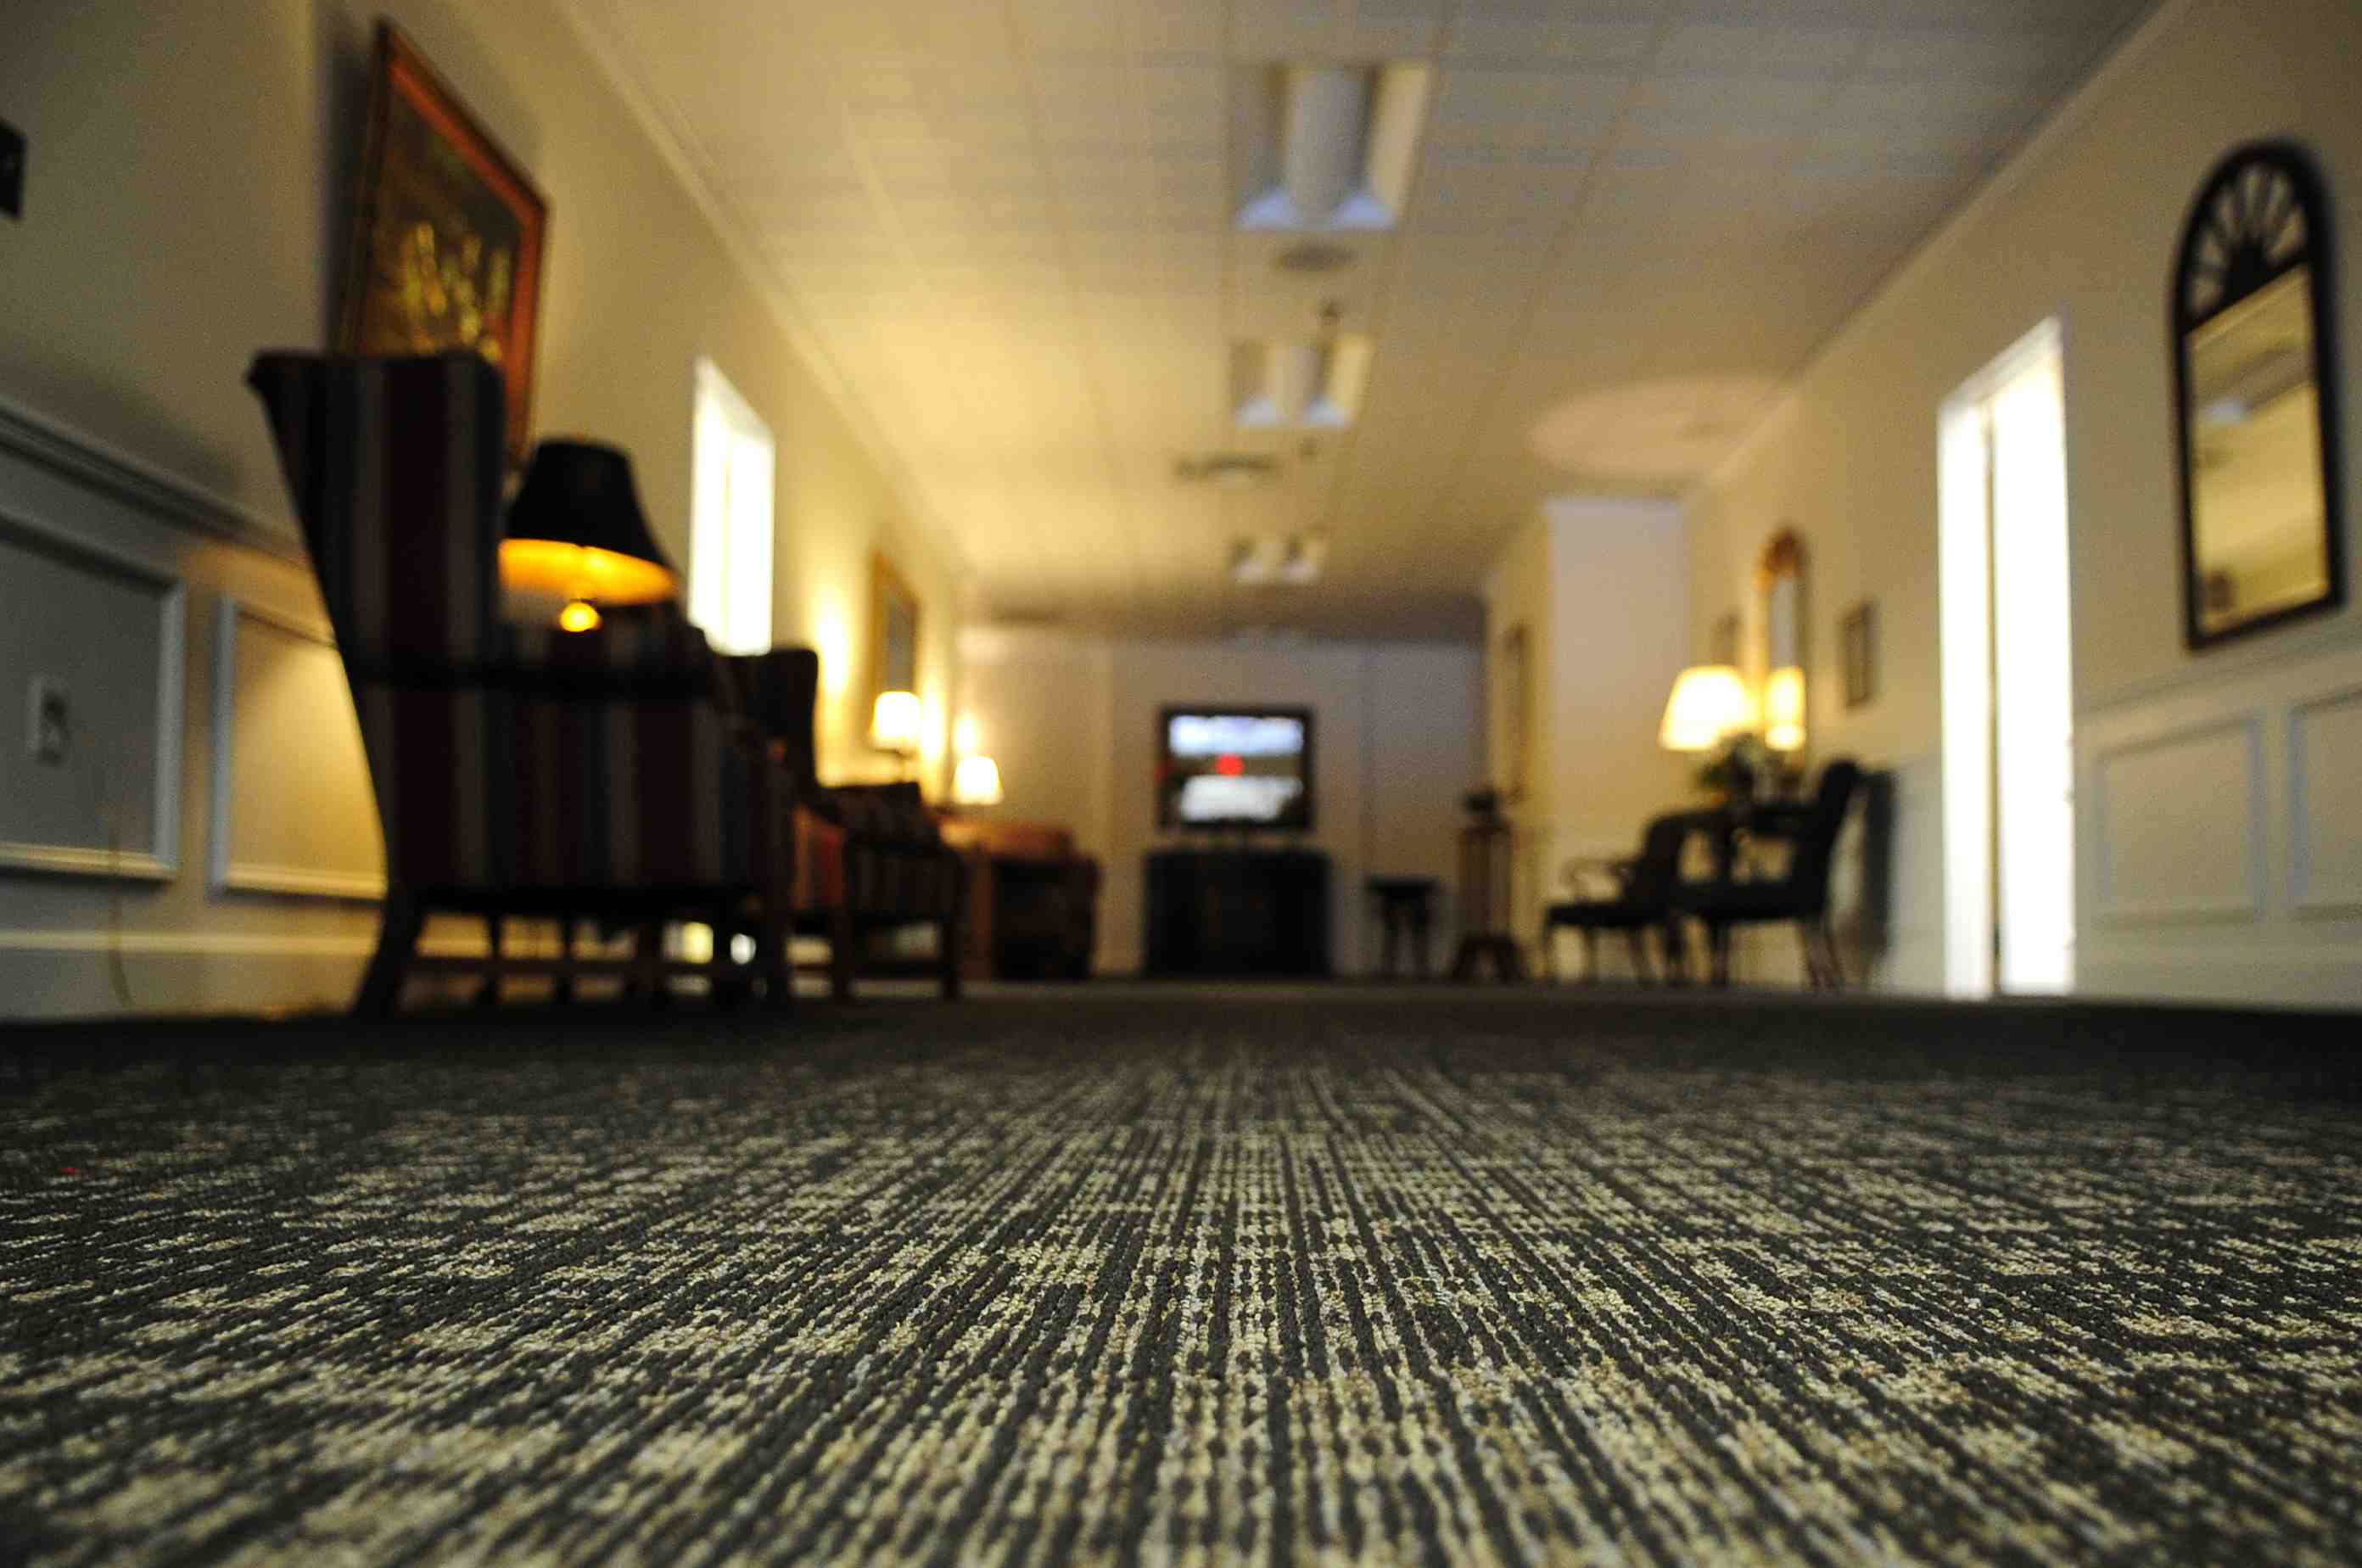 commercial janitorial services - Steam Extraction Carpet Cleaning Service